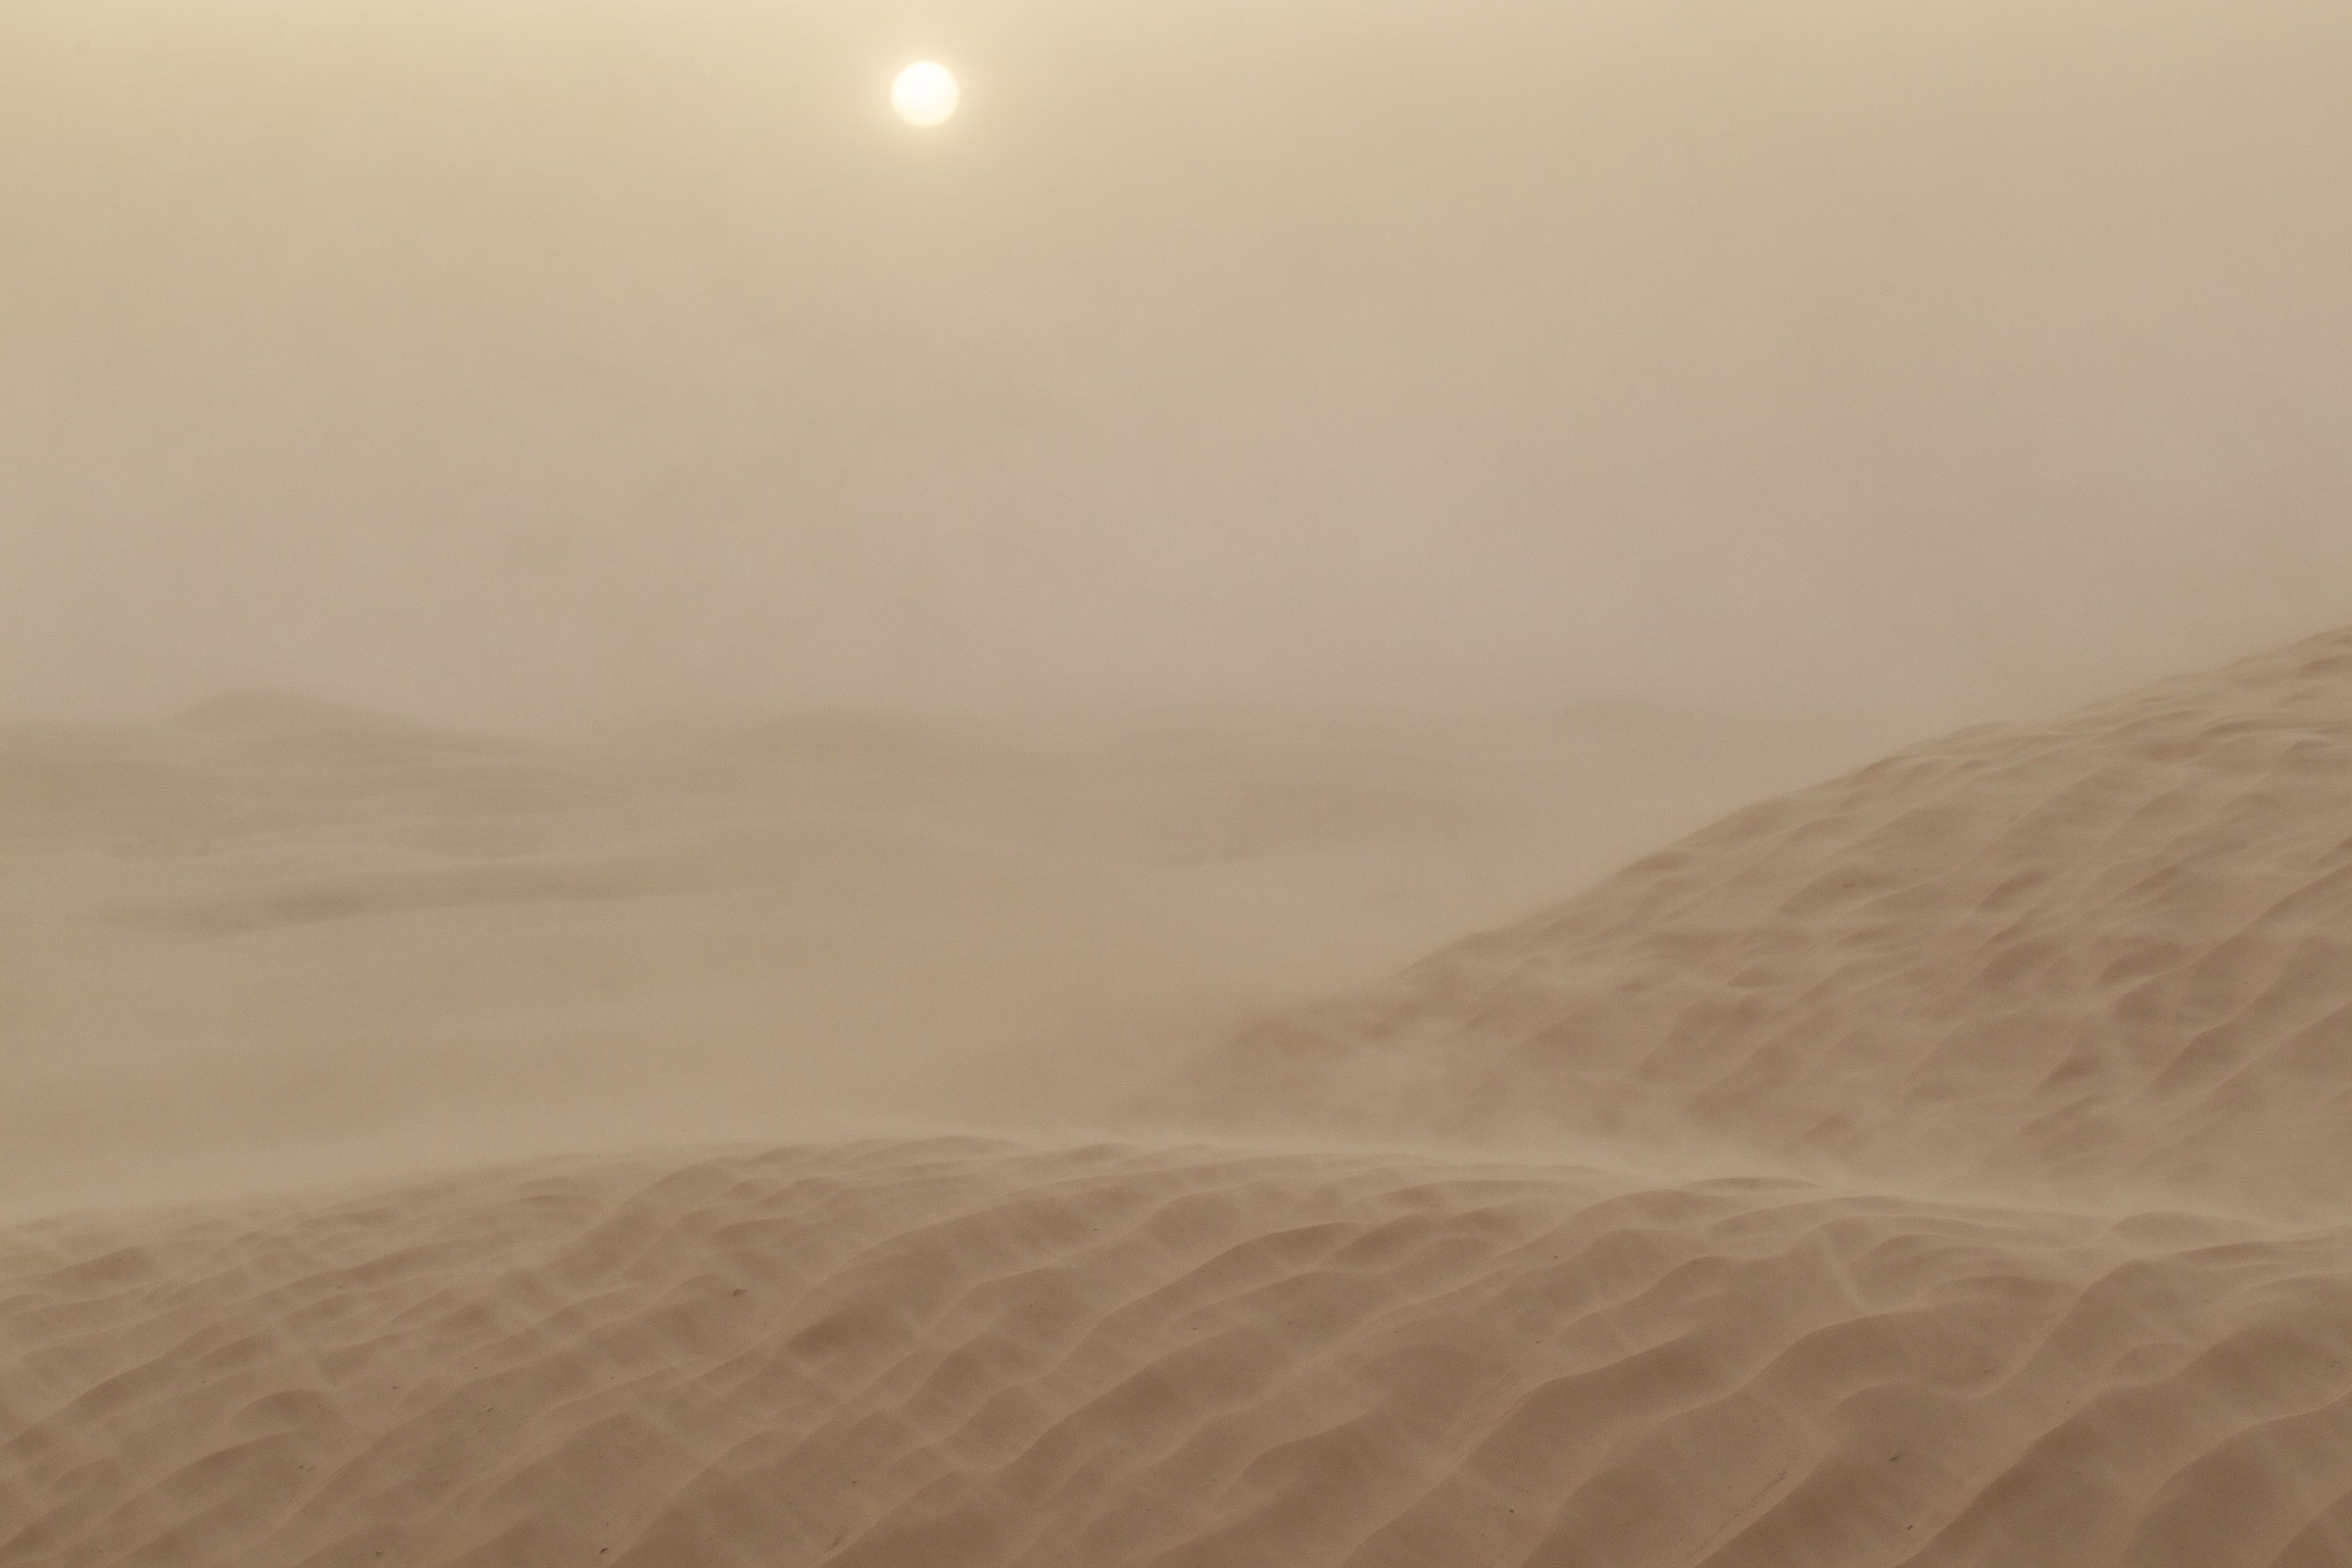 Sunlight filters dimly through clouds of sand during a severe sandstorm in the Tunisian Sahara.